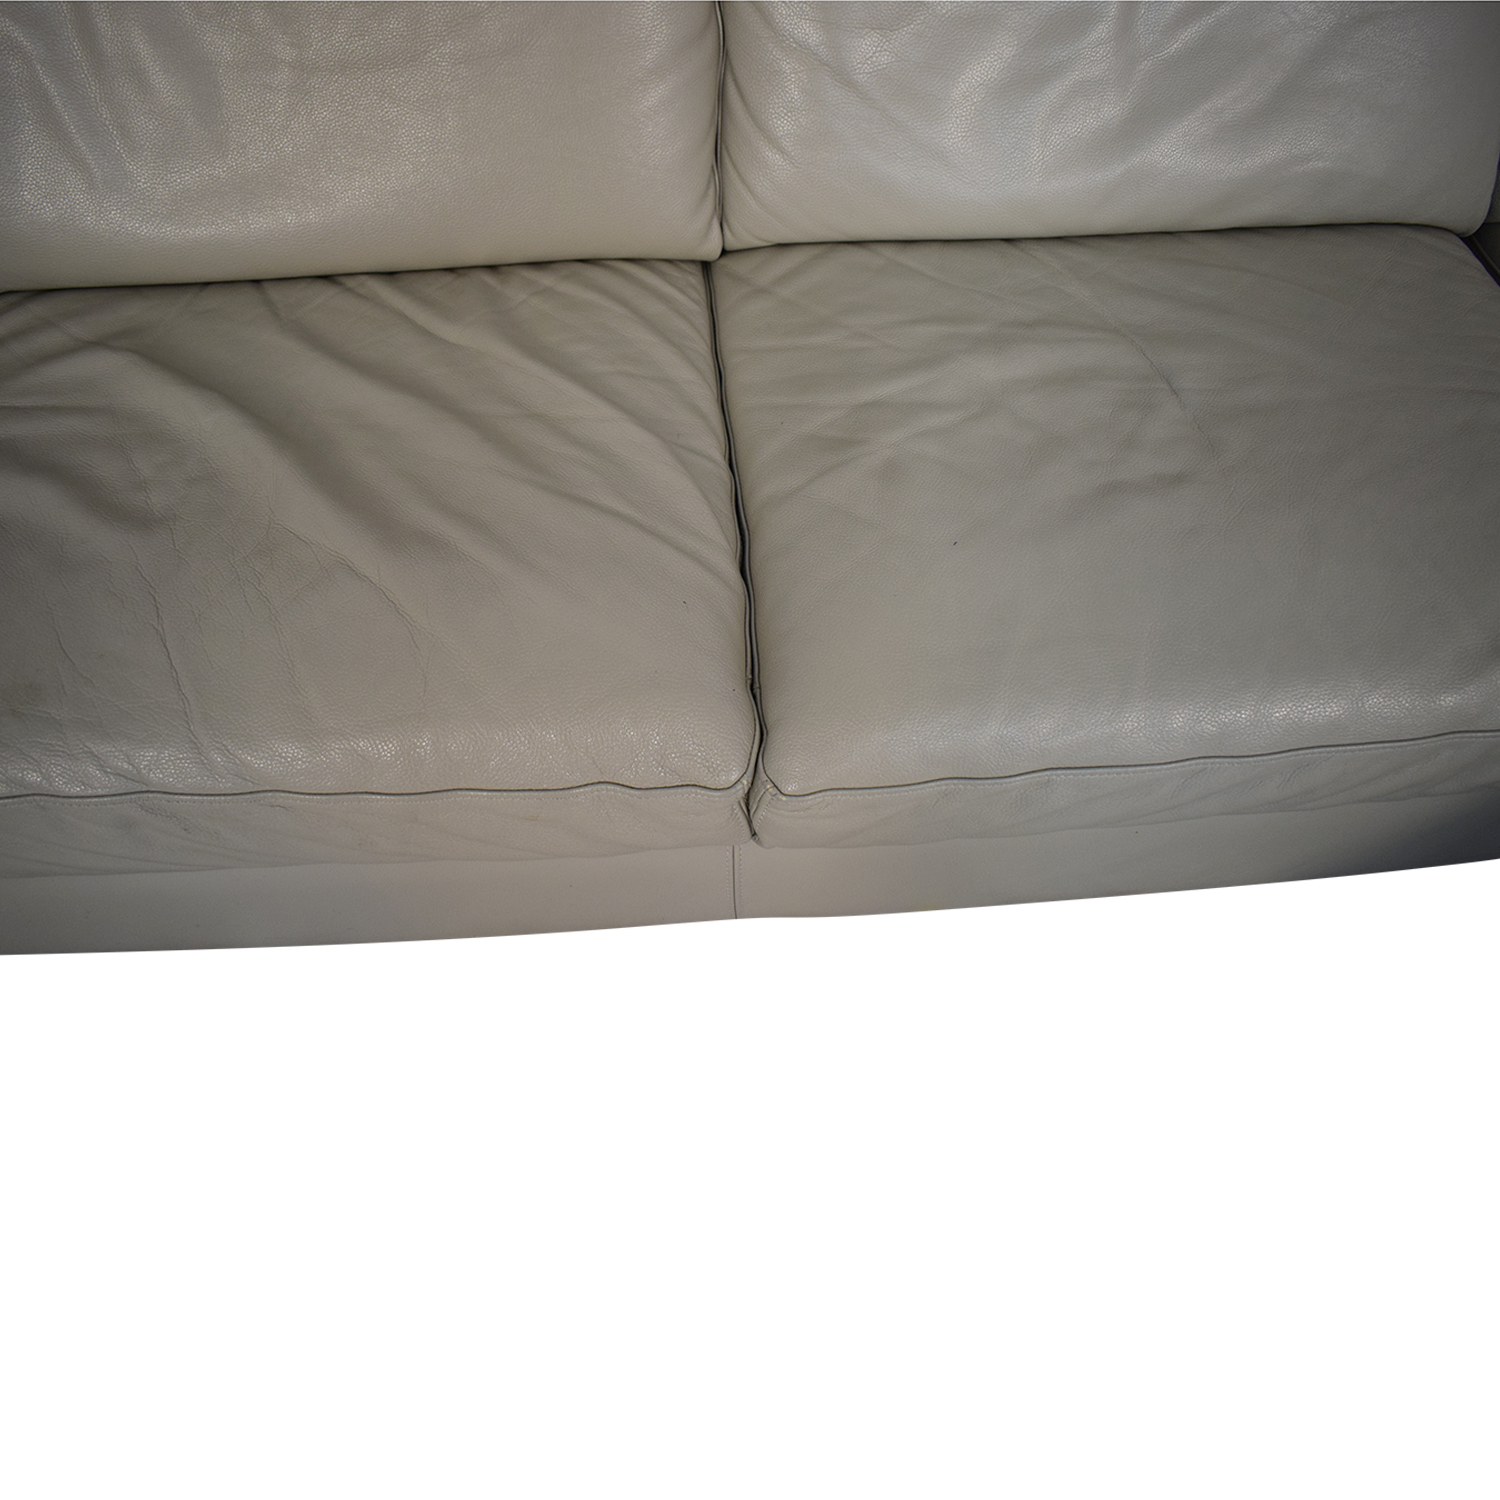 Chateau d'Ax Chateau d'Ax Sectional Sofa with Chaise coupon